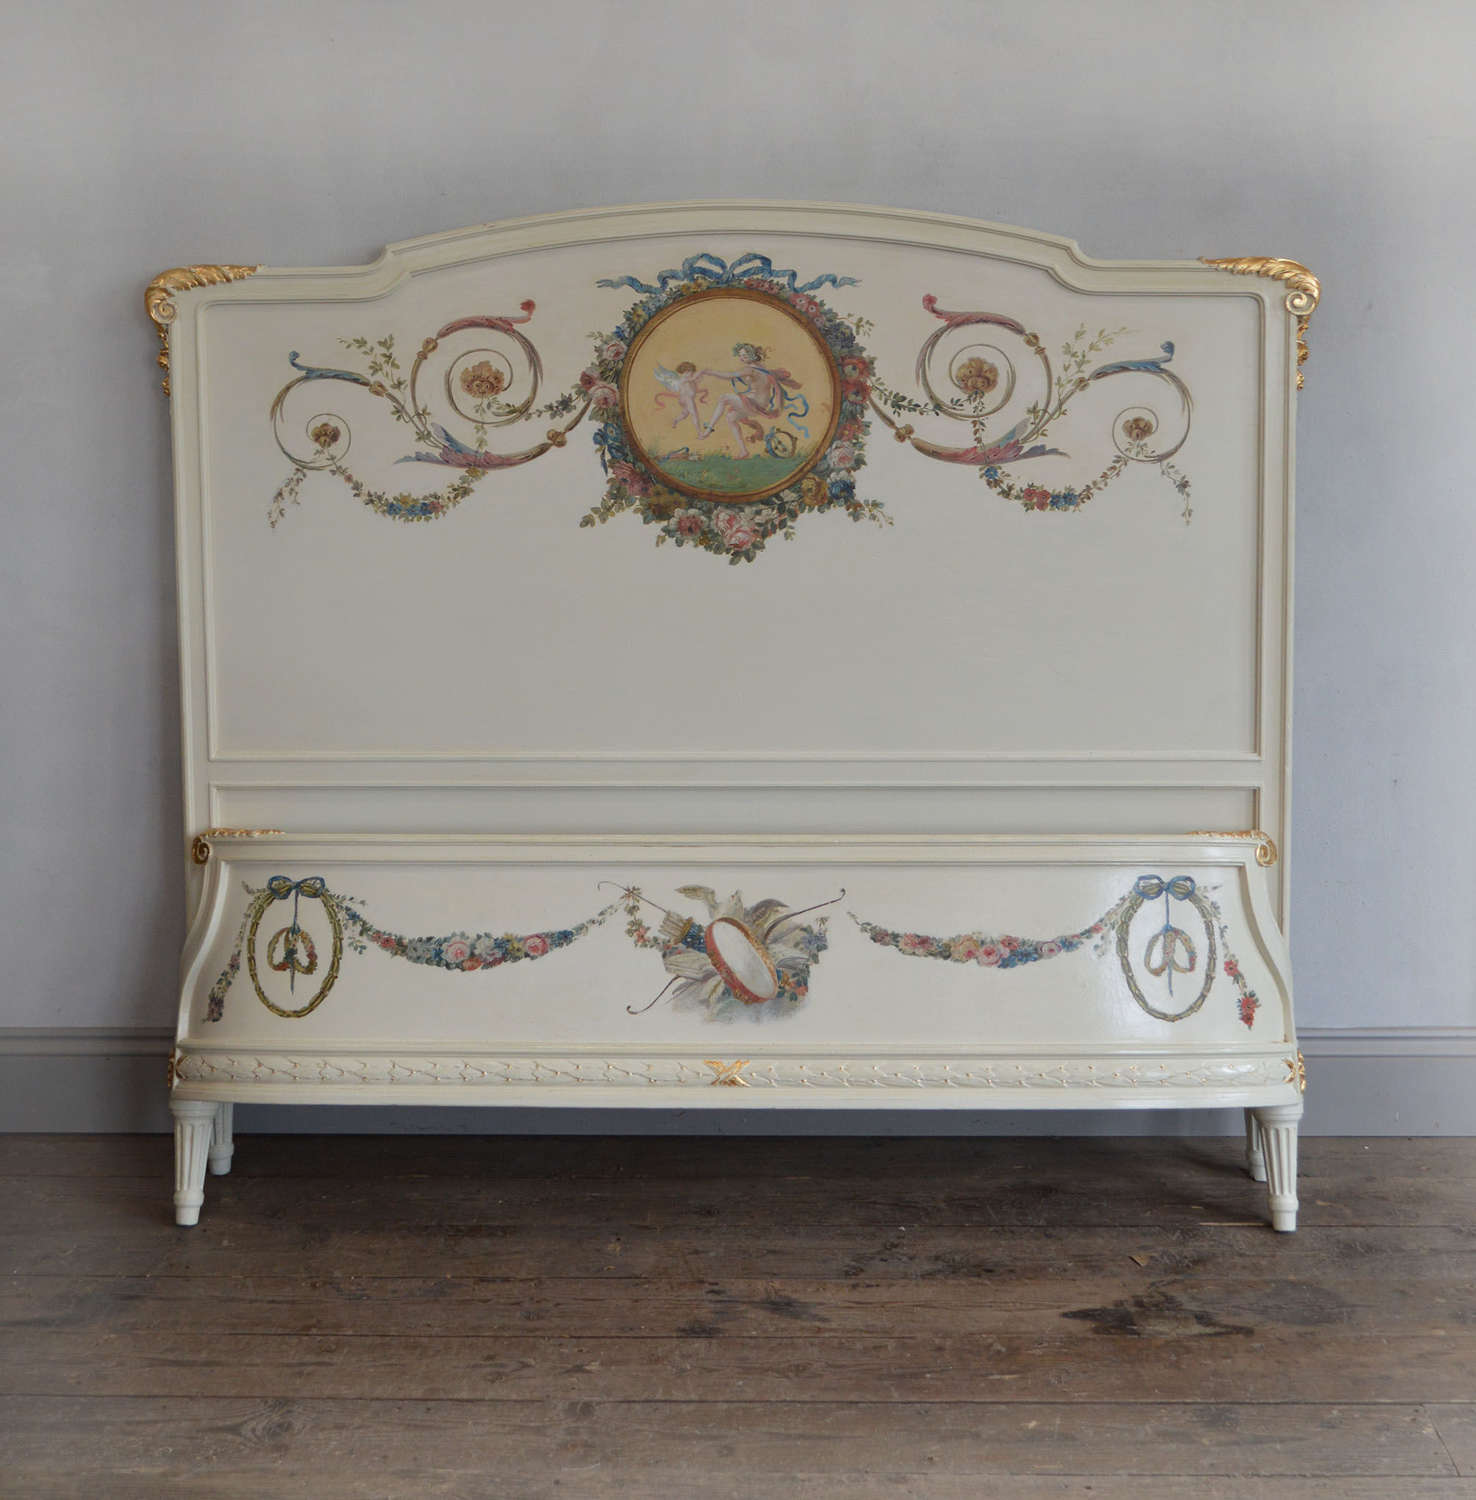 King-size Neoclassical style Hand painted Bedstead